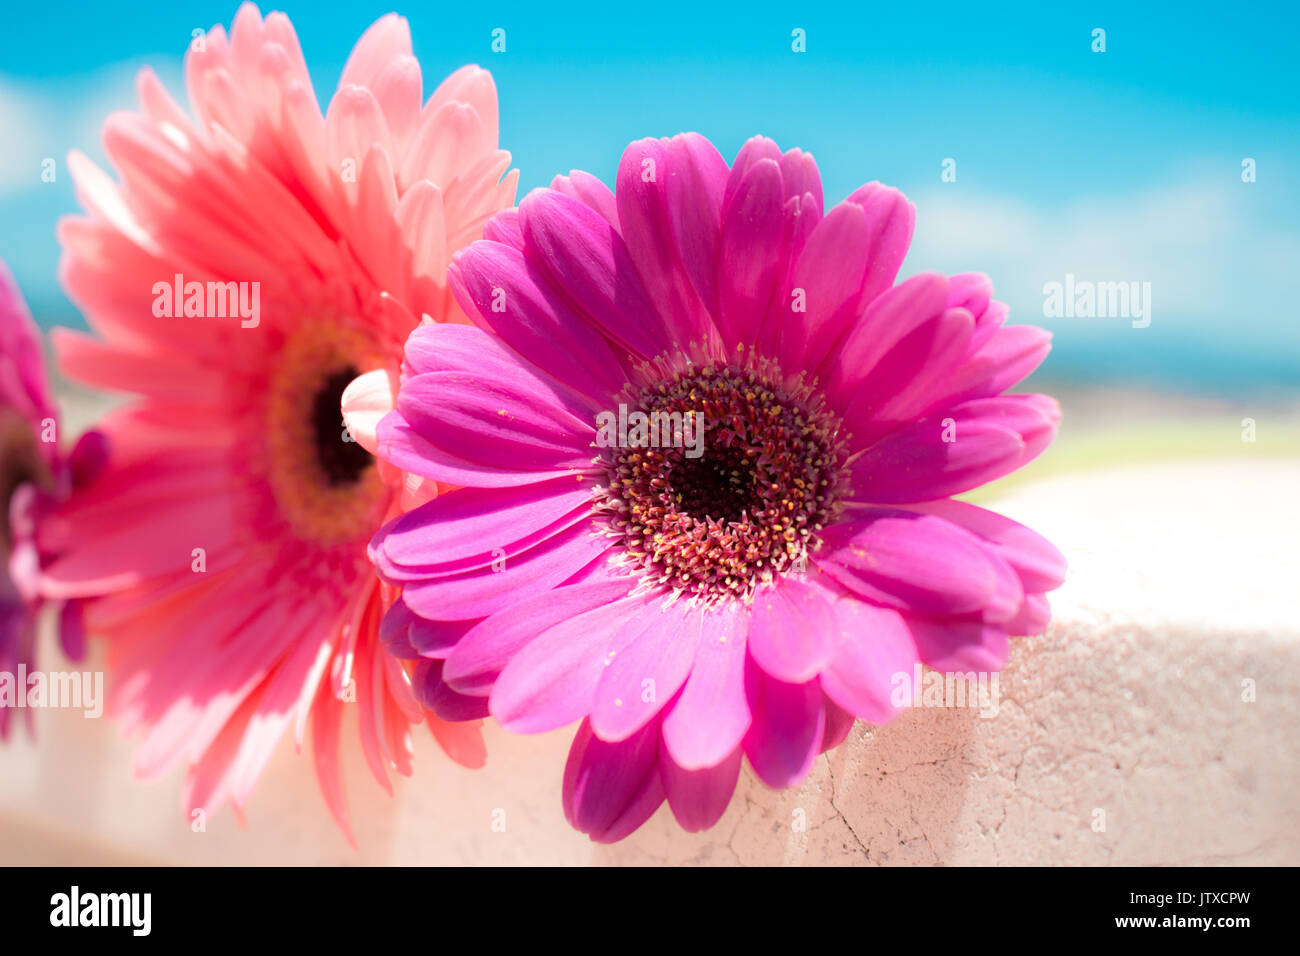 Three Pink Gerbera Daisy Flowers The Image Is Isolated White Stock